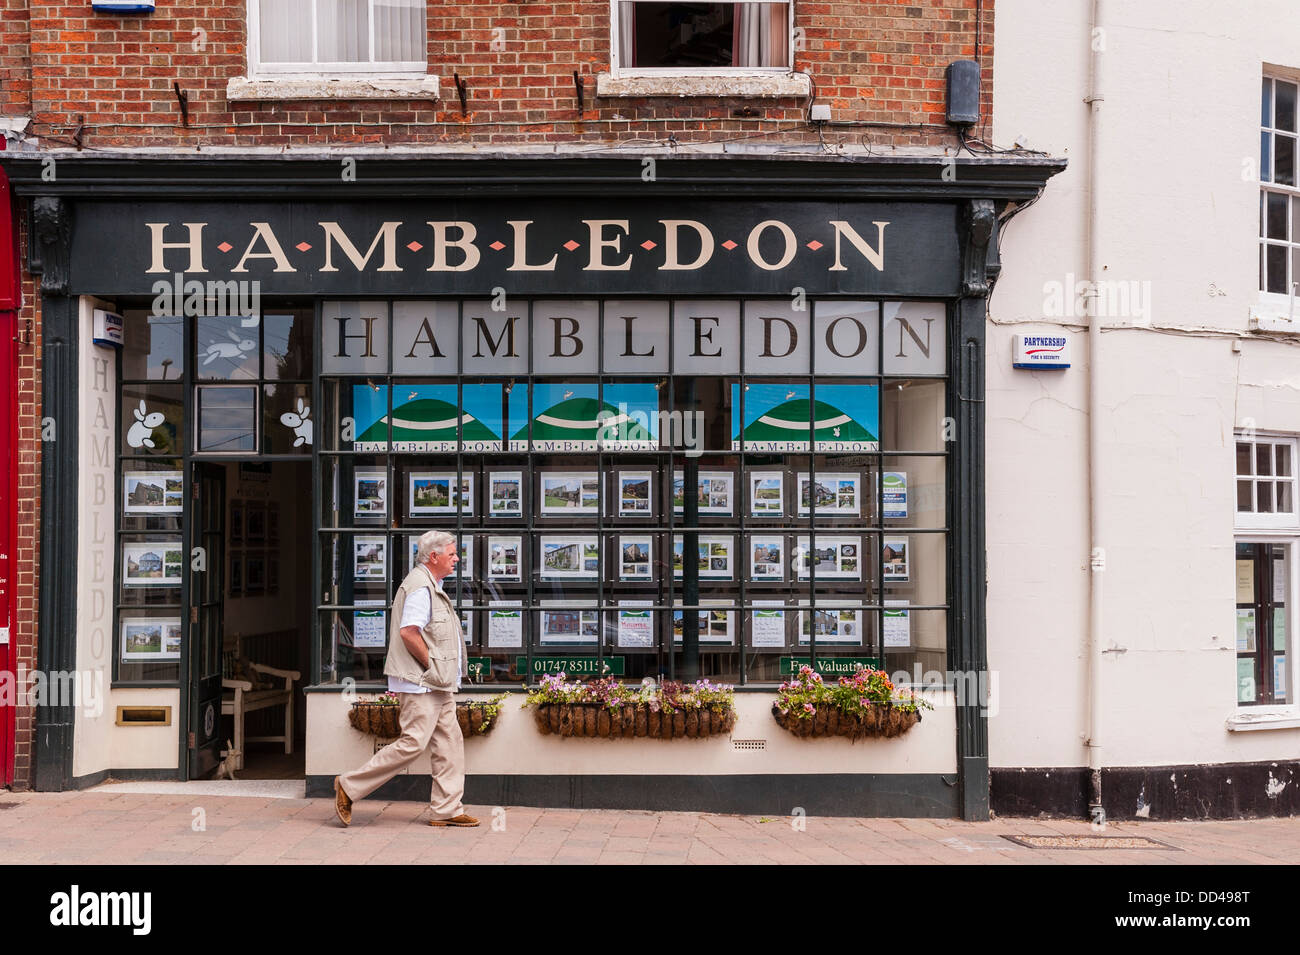 The Hambledon Estate Agents in Shaftesbury , Dorset , England , Britain , Uk - Stock Image